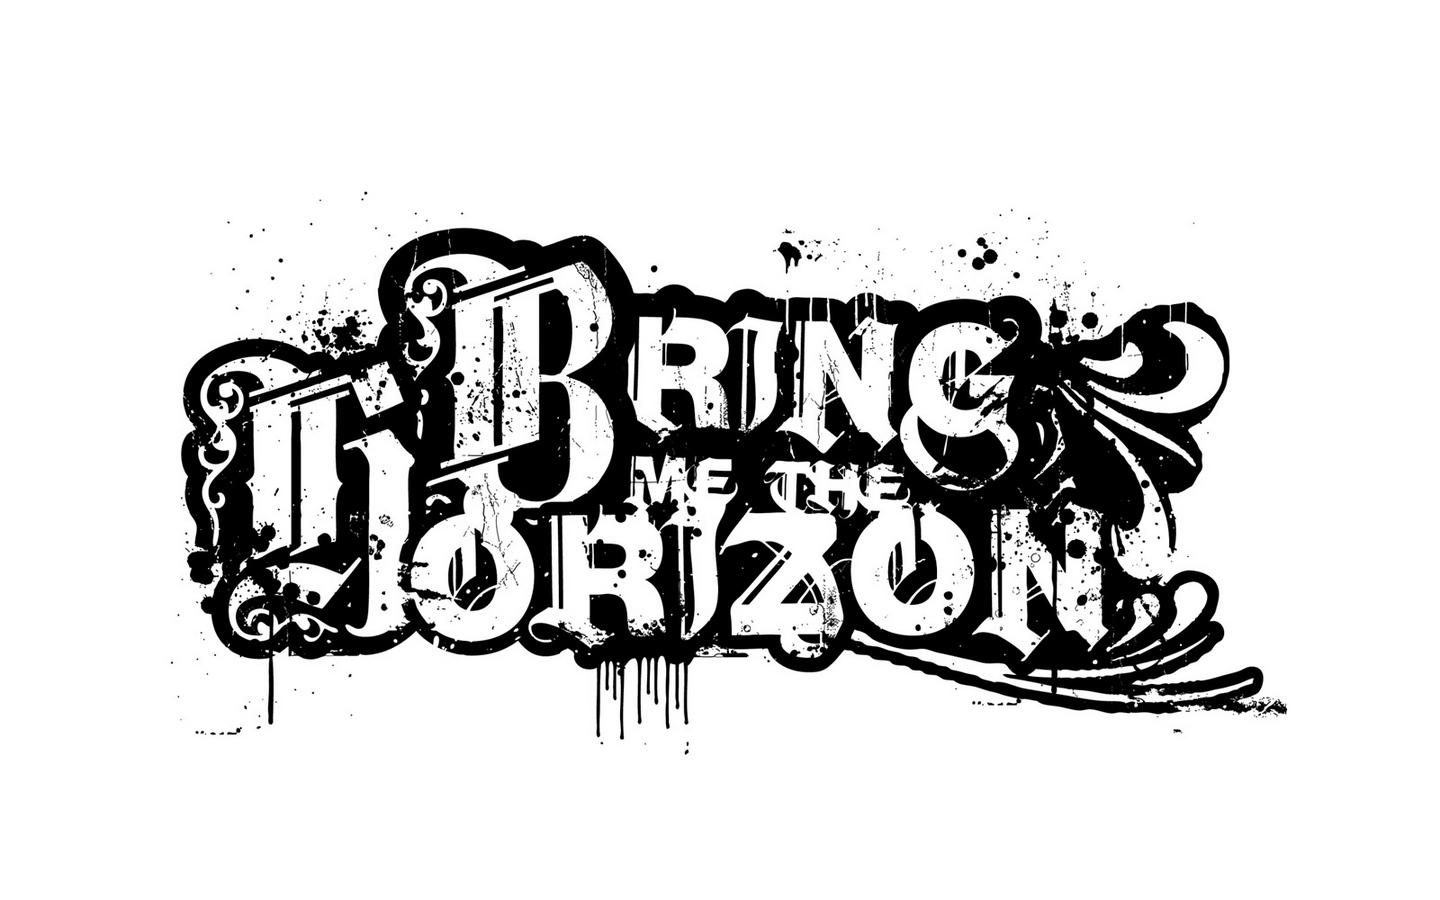 Wallpaper Bring Me The Horizon, Text, Sign, Graphics, - Bring Me The Horizon Facebook Cover , HD Wallpaper & Backgrounds